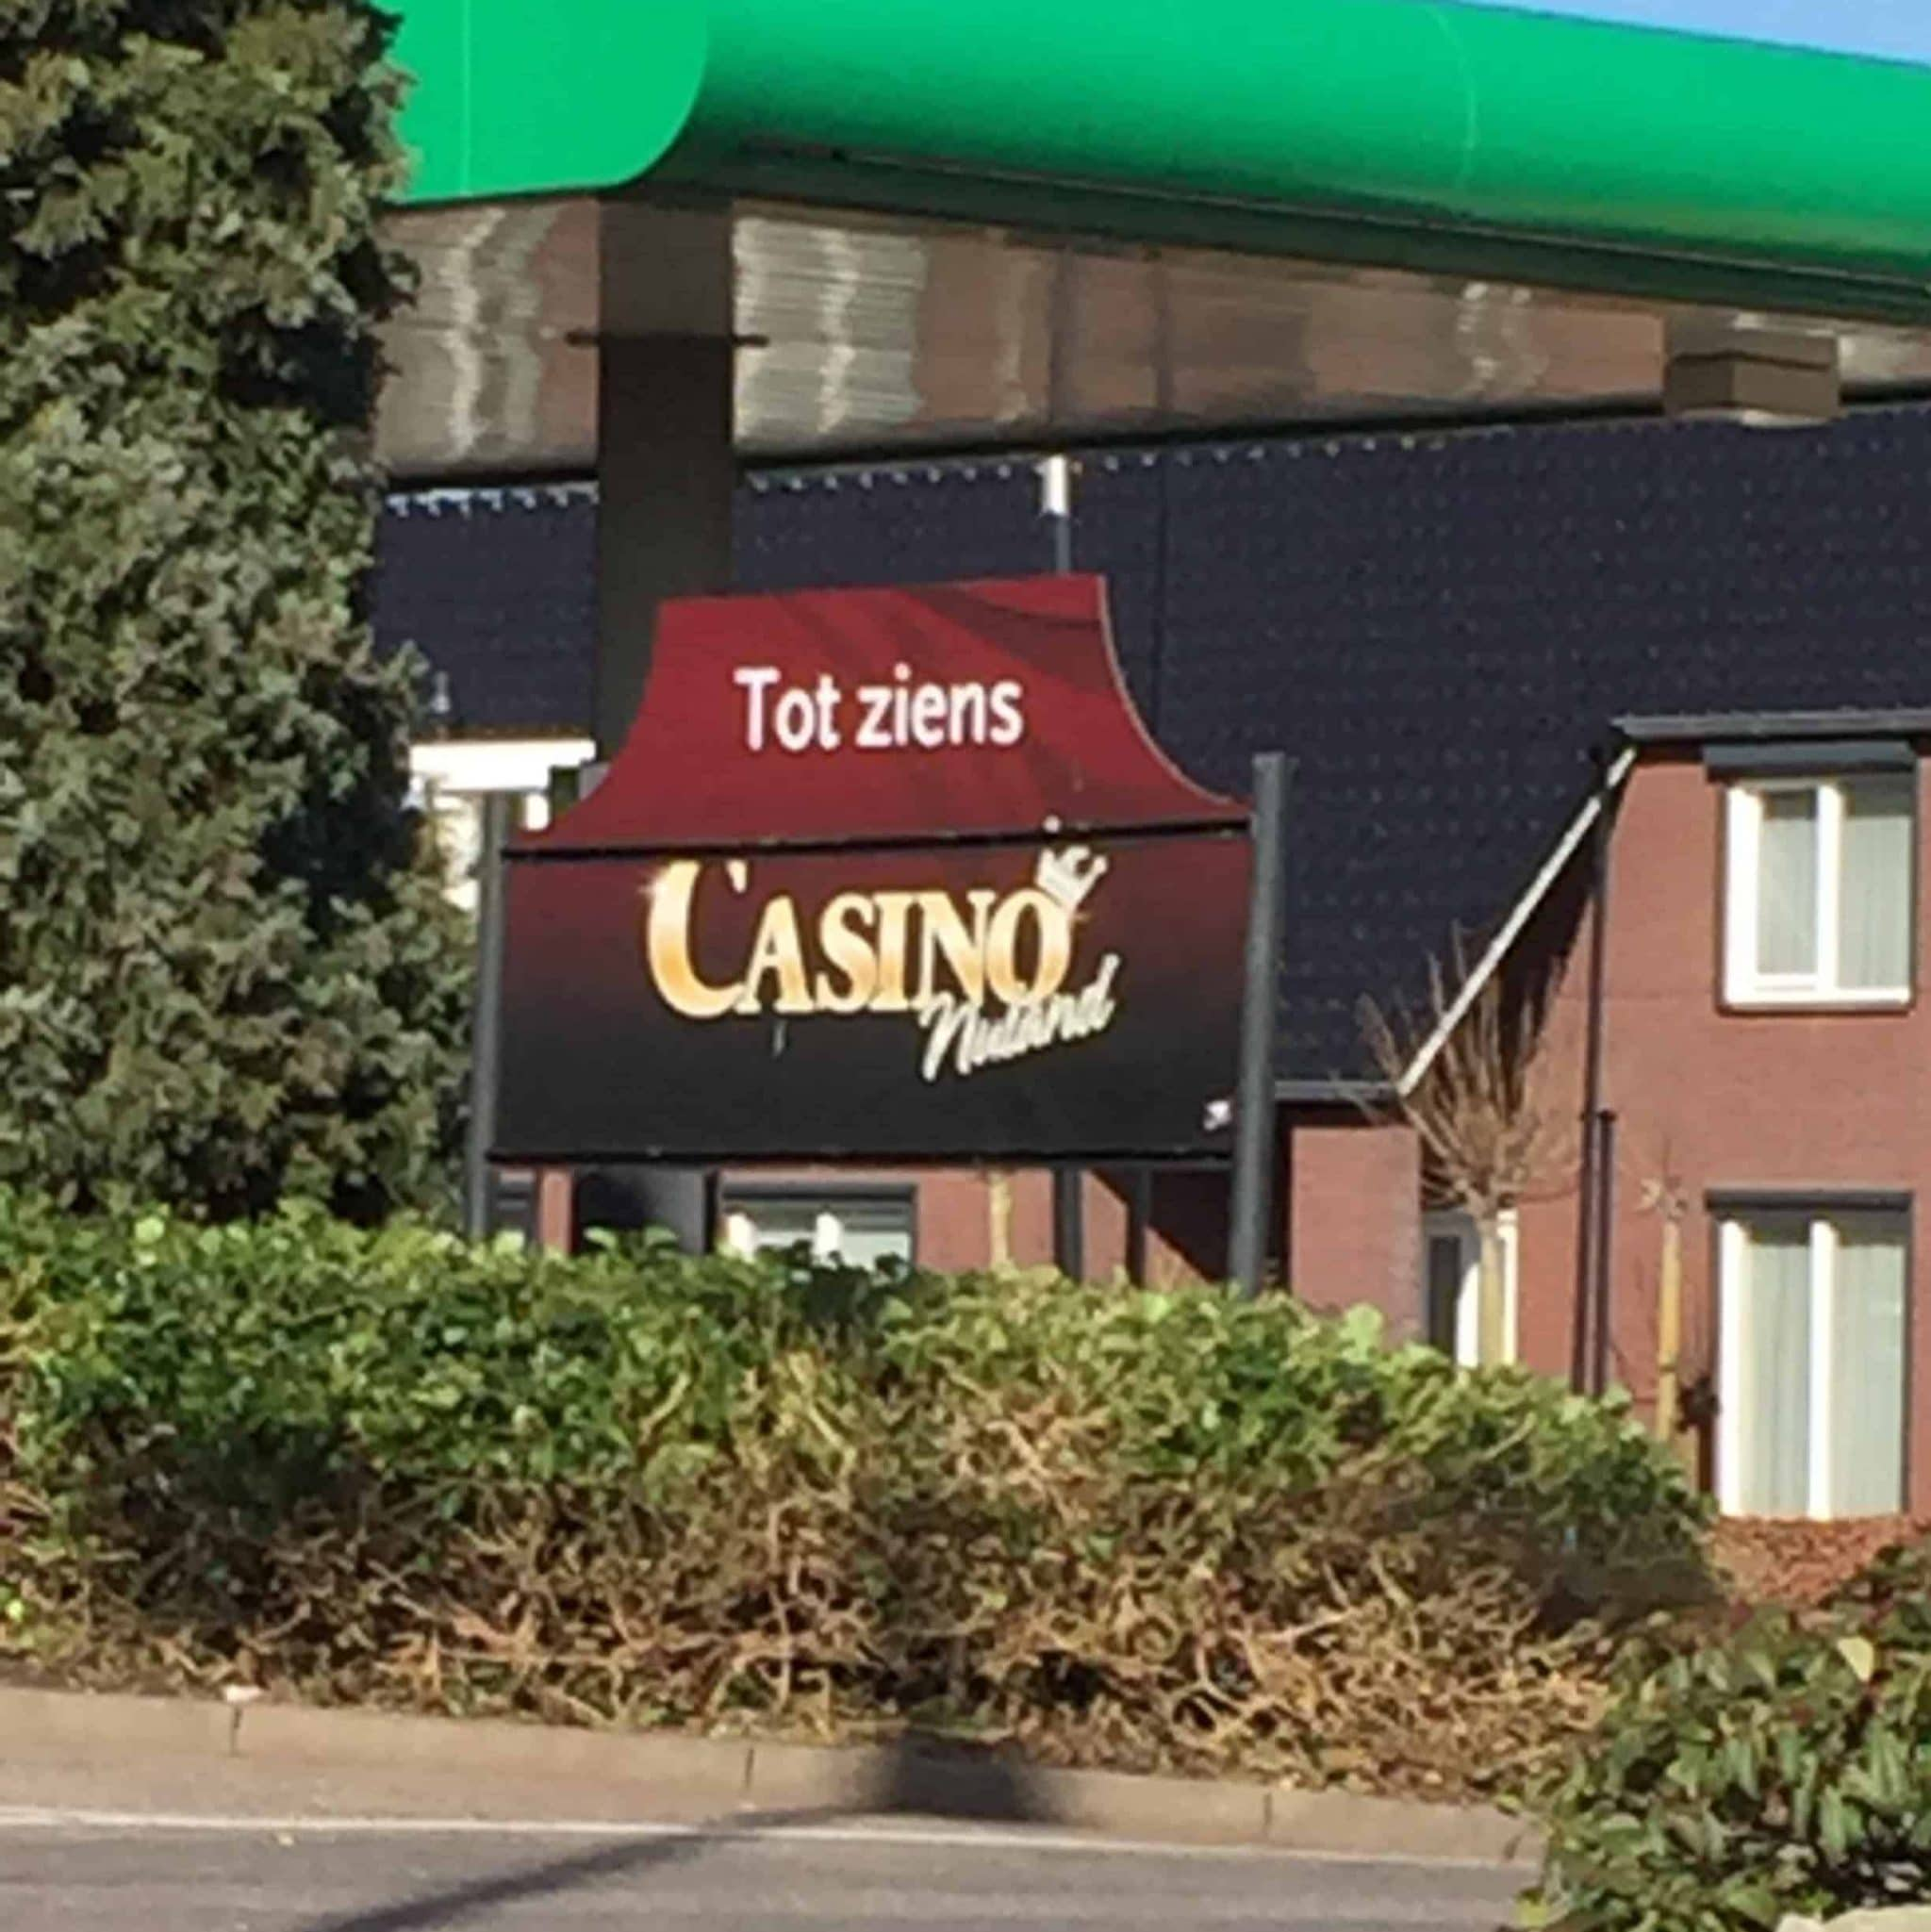 Try Out Casino Nuland